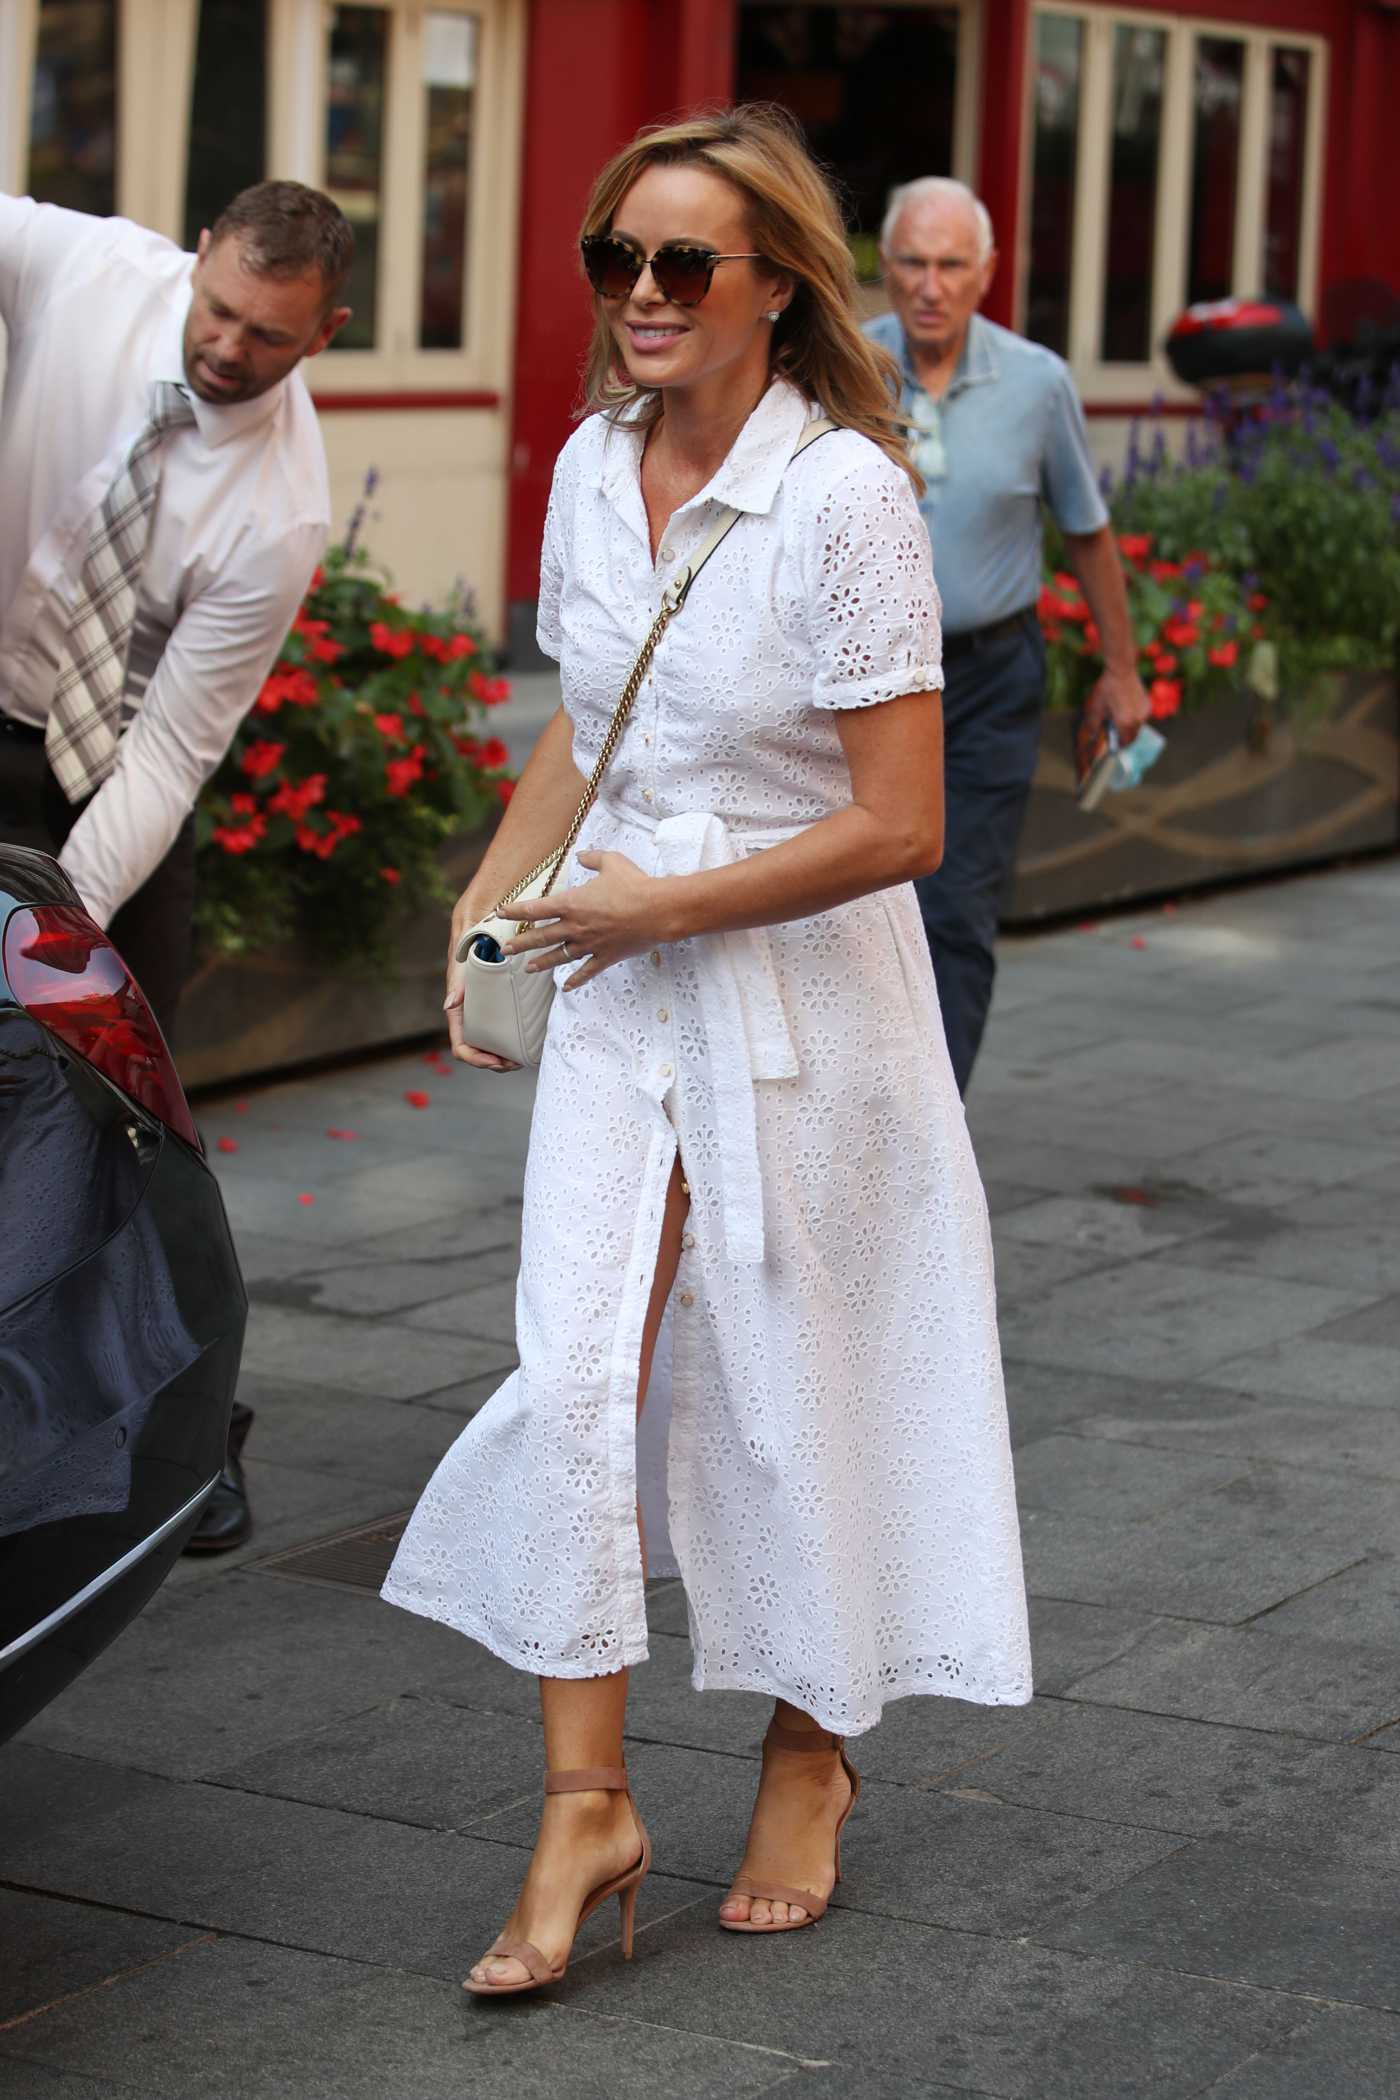 Amanda Holden in a White Dress Leaves the Global House in London 09/15/2020